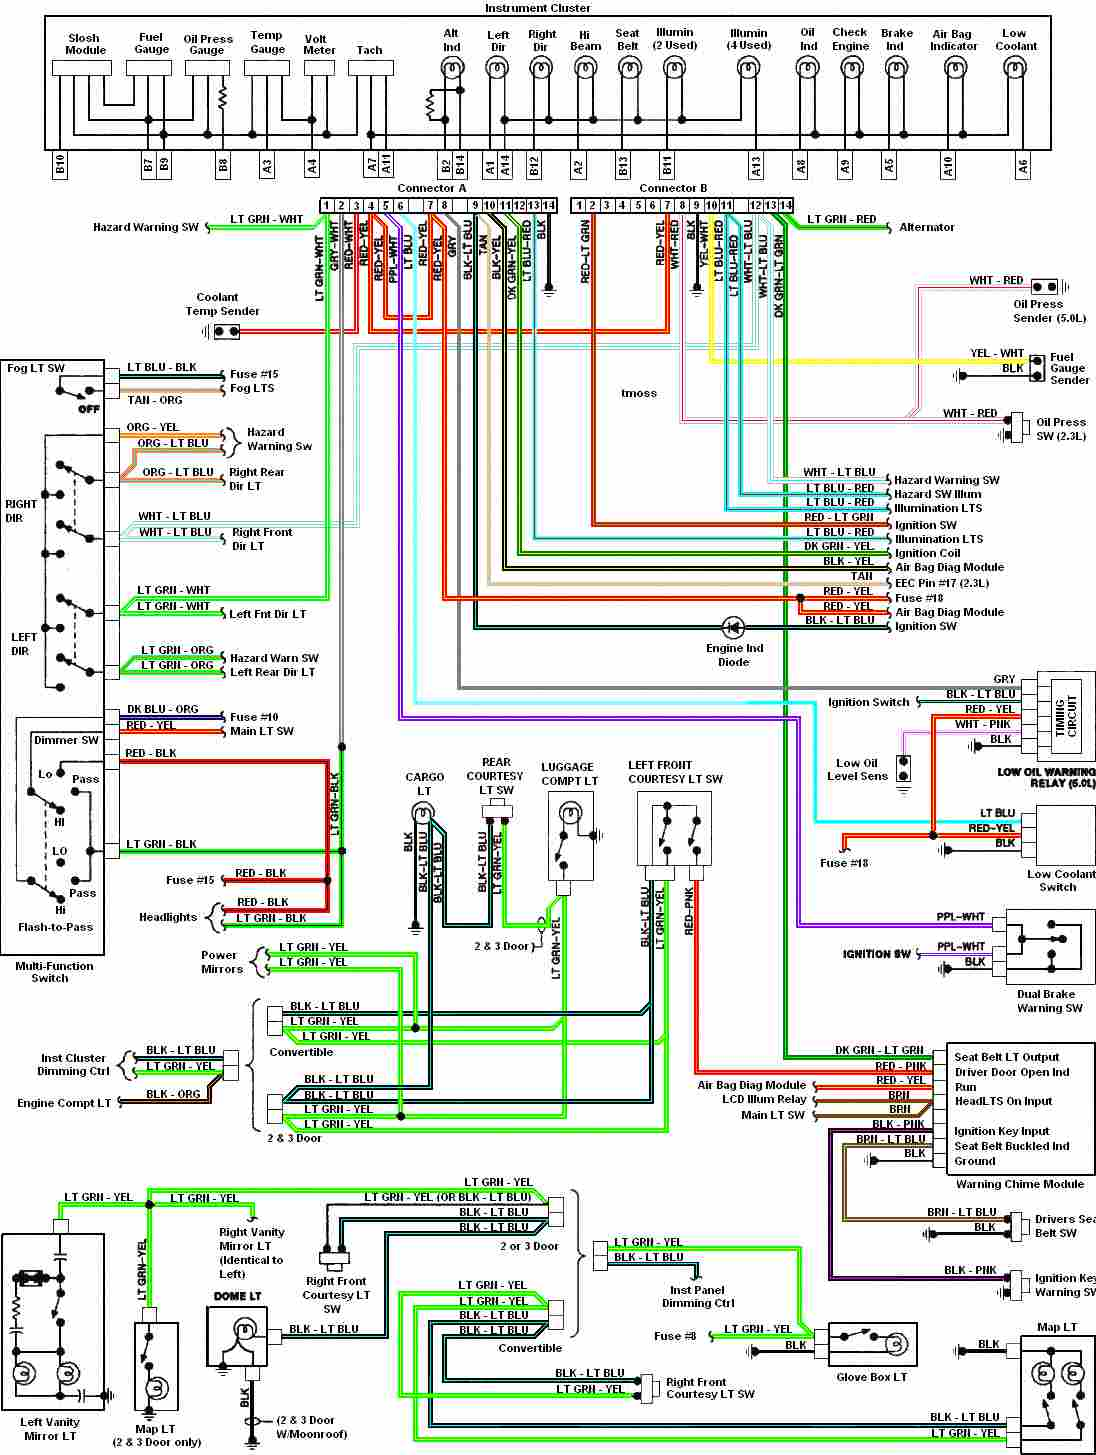 2005 Honda Jazz Headlight Wiring Diagram on super beetle convertible wiring